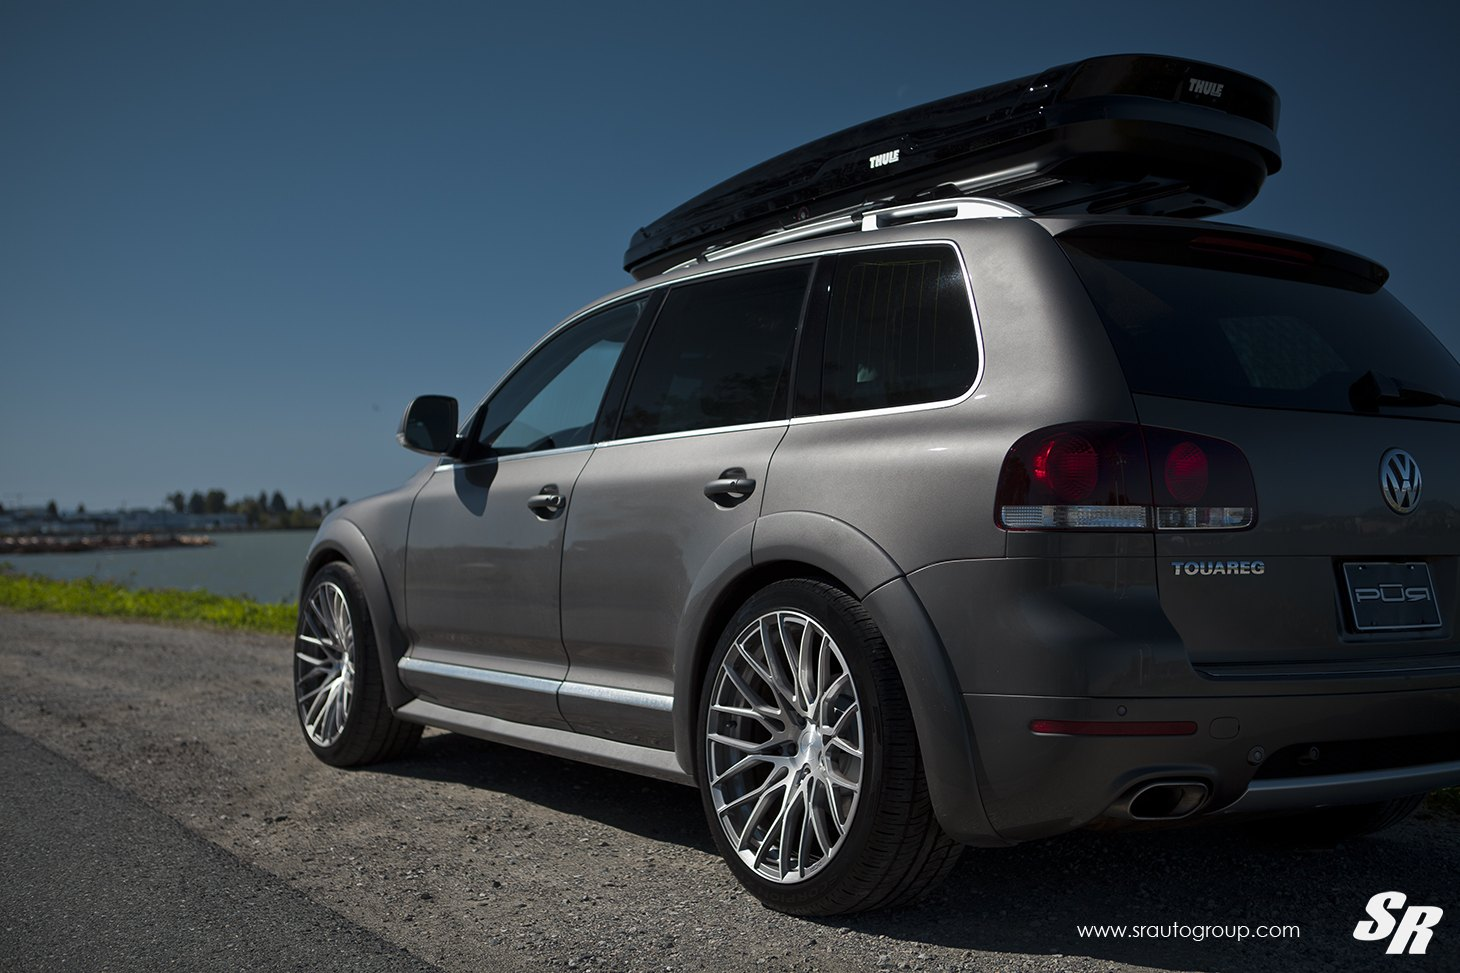 Gray Vw Touareg With Aftermarket Rear Diffuser Photo By Sr Auto Group